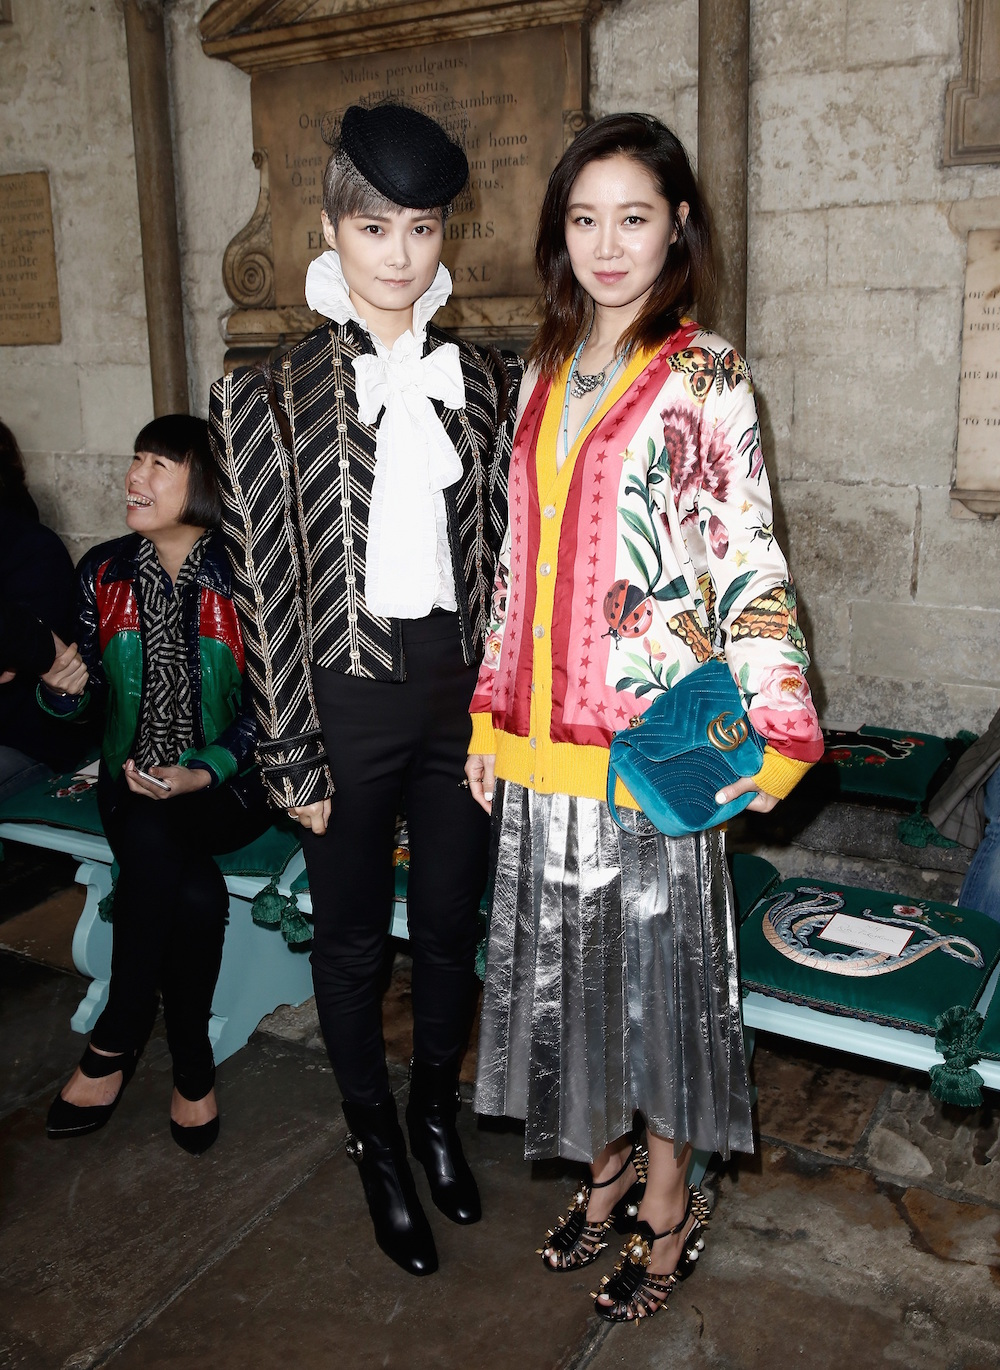 LONDON, ENGLAND - JUNE 02: Chris Lee (L) and Kong Hyo Jin attend the Gucci Cruise 2017 fashion show at the Cloisters of Westminster Abbey on June 2, 2016 in London, England. (Photo by John Phillips/Getty Images for GUCCI)